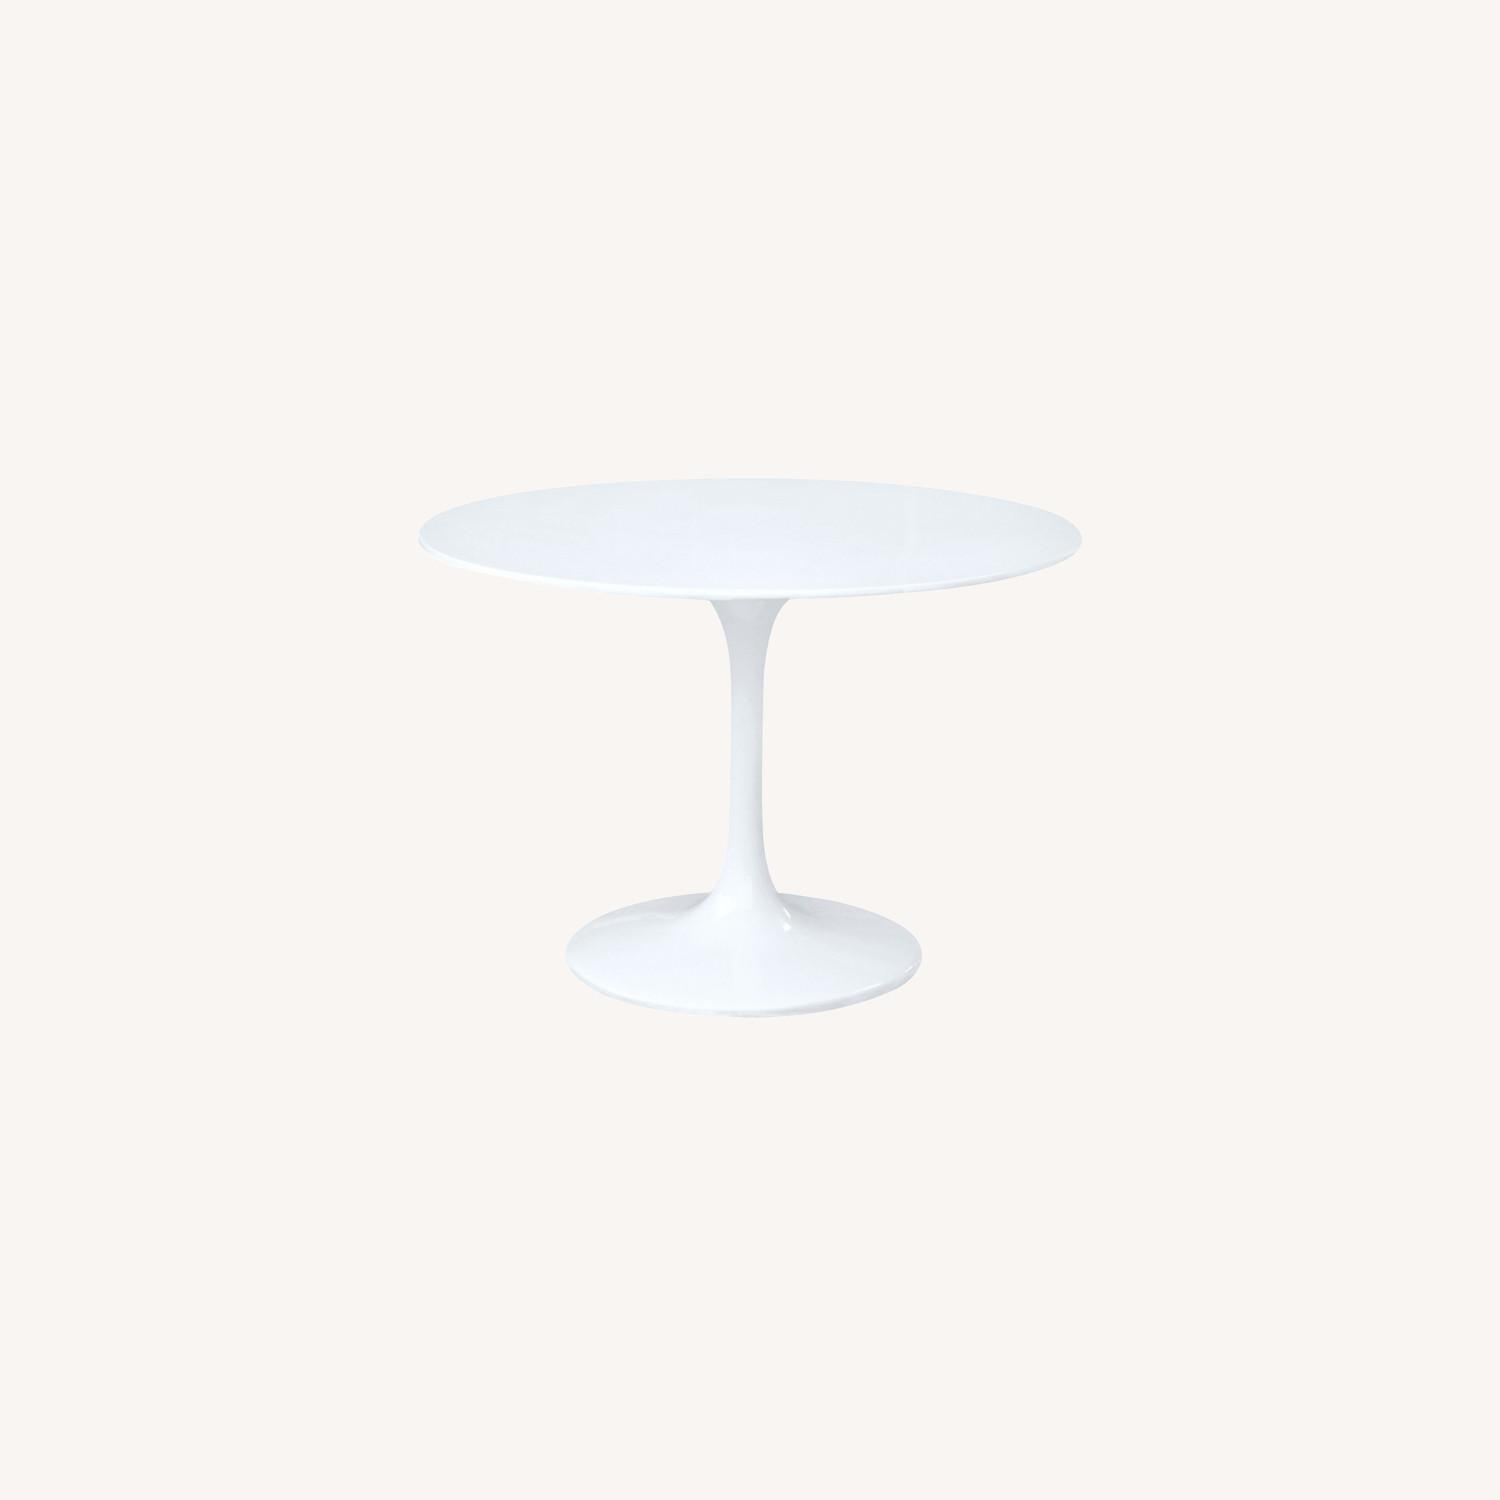 48-Inch Dining Table Molded In White Fiberglass - image-5